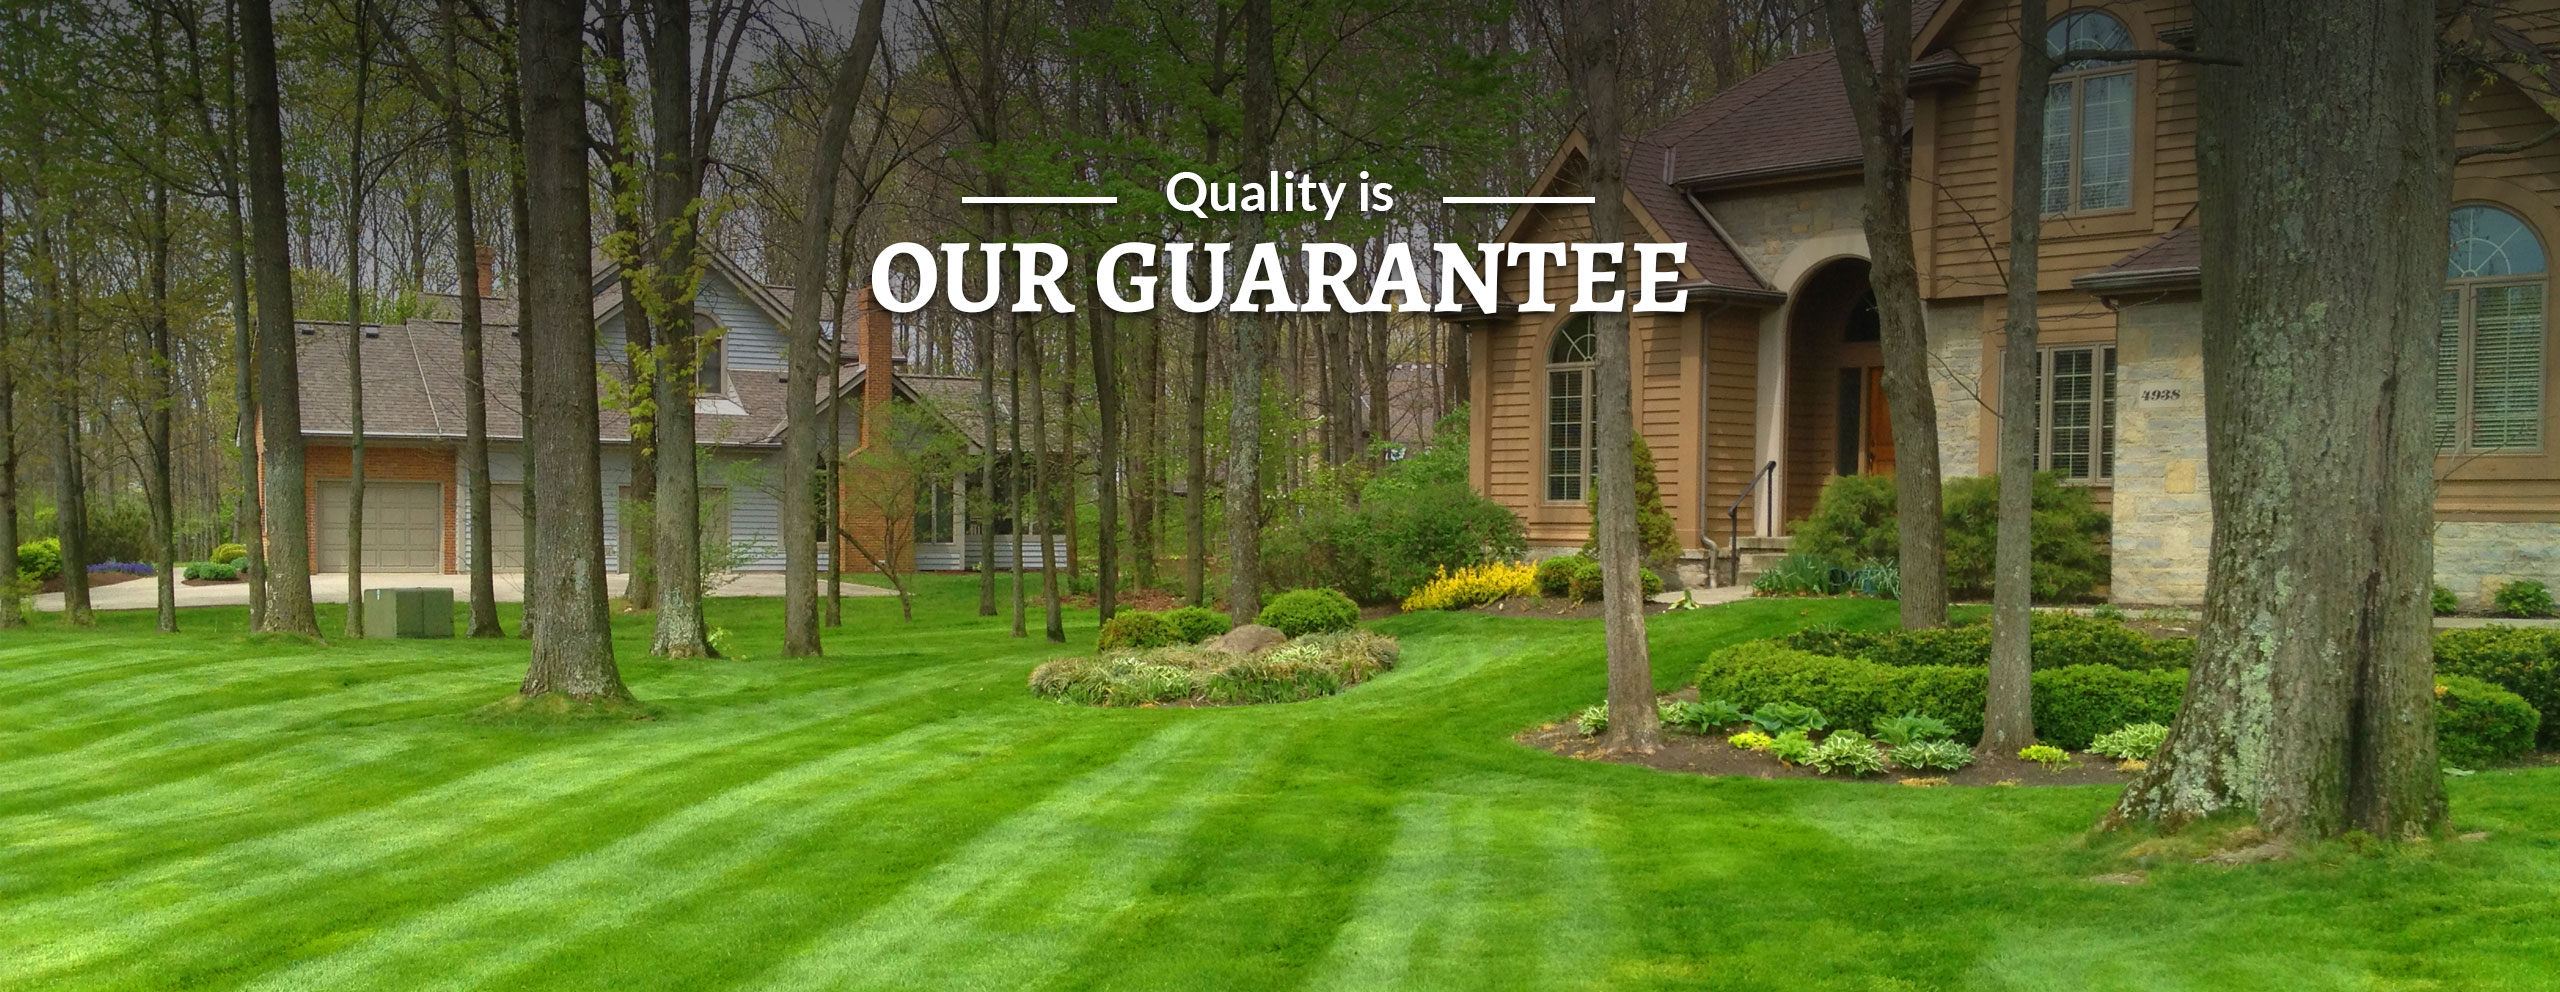 slide-03-quality-our-guarantee